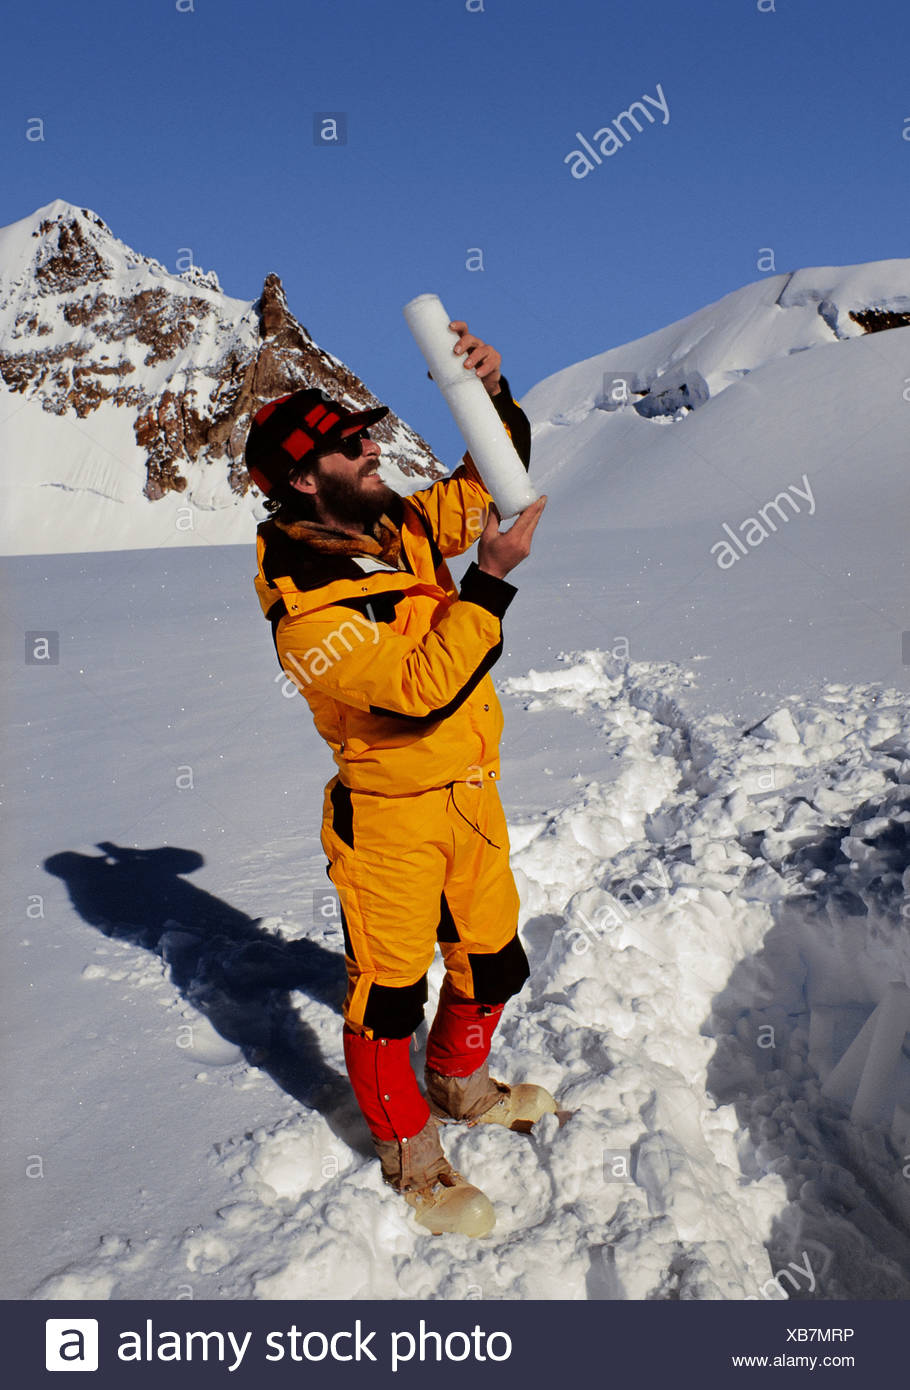 Looking at Ice Core - Stock Image